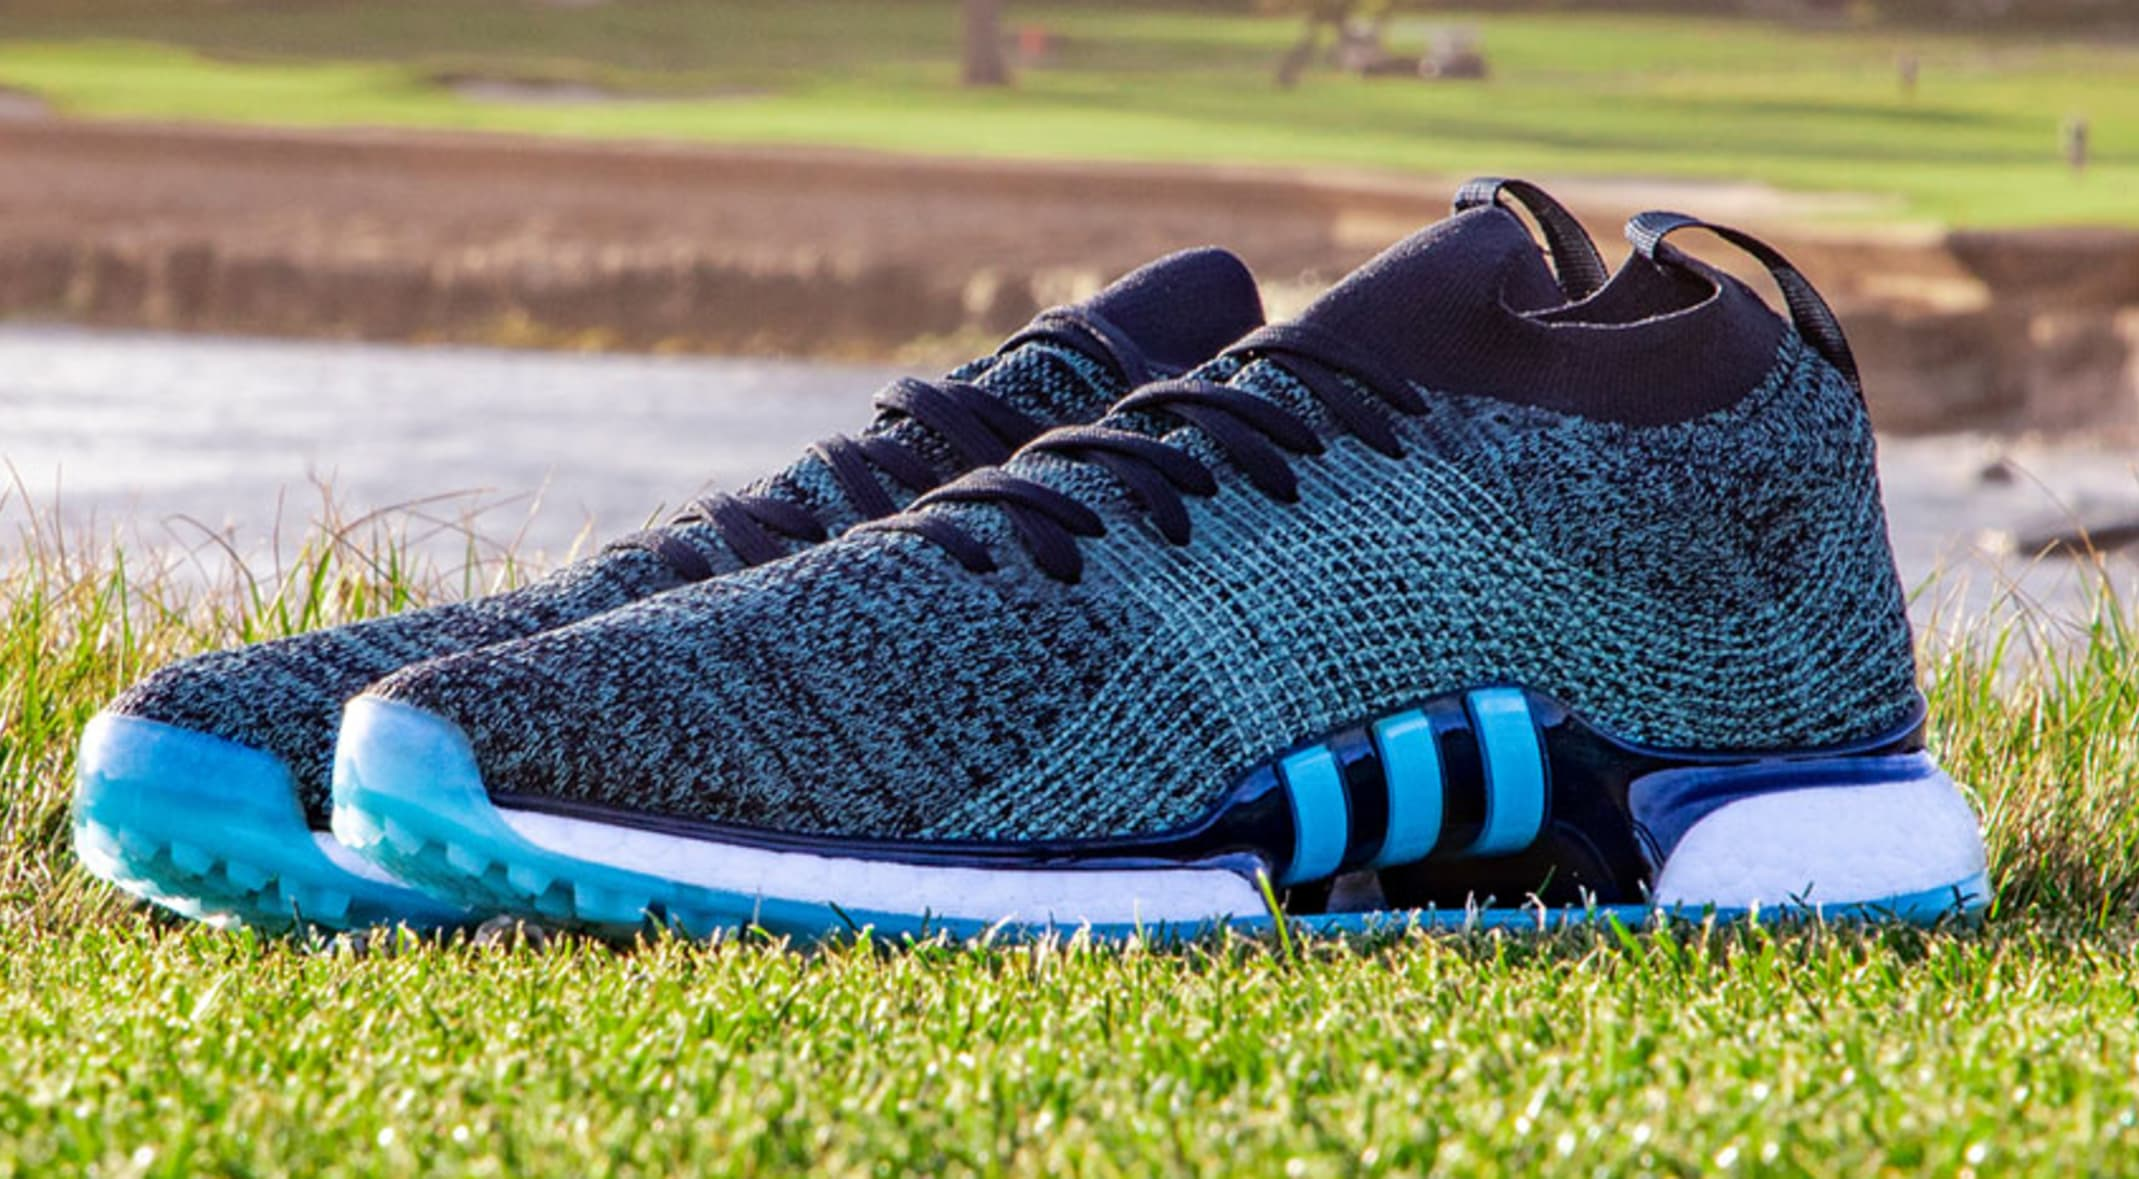 c6879a9b While this shoe is a first for golf, adidas and Parley have partnered on  several